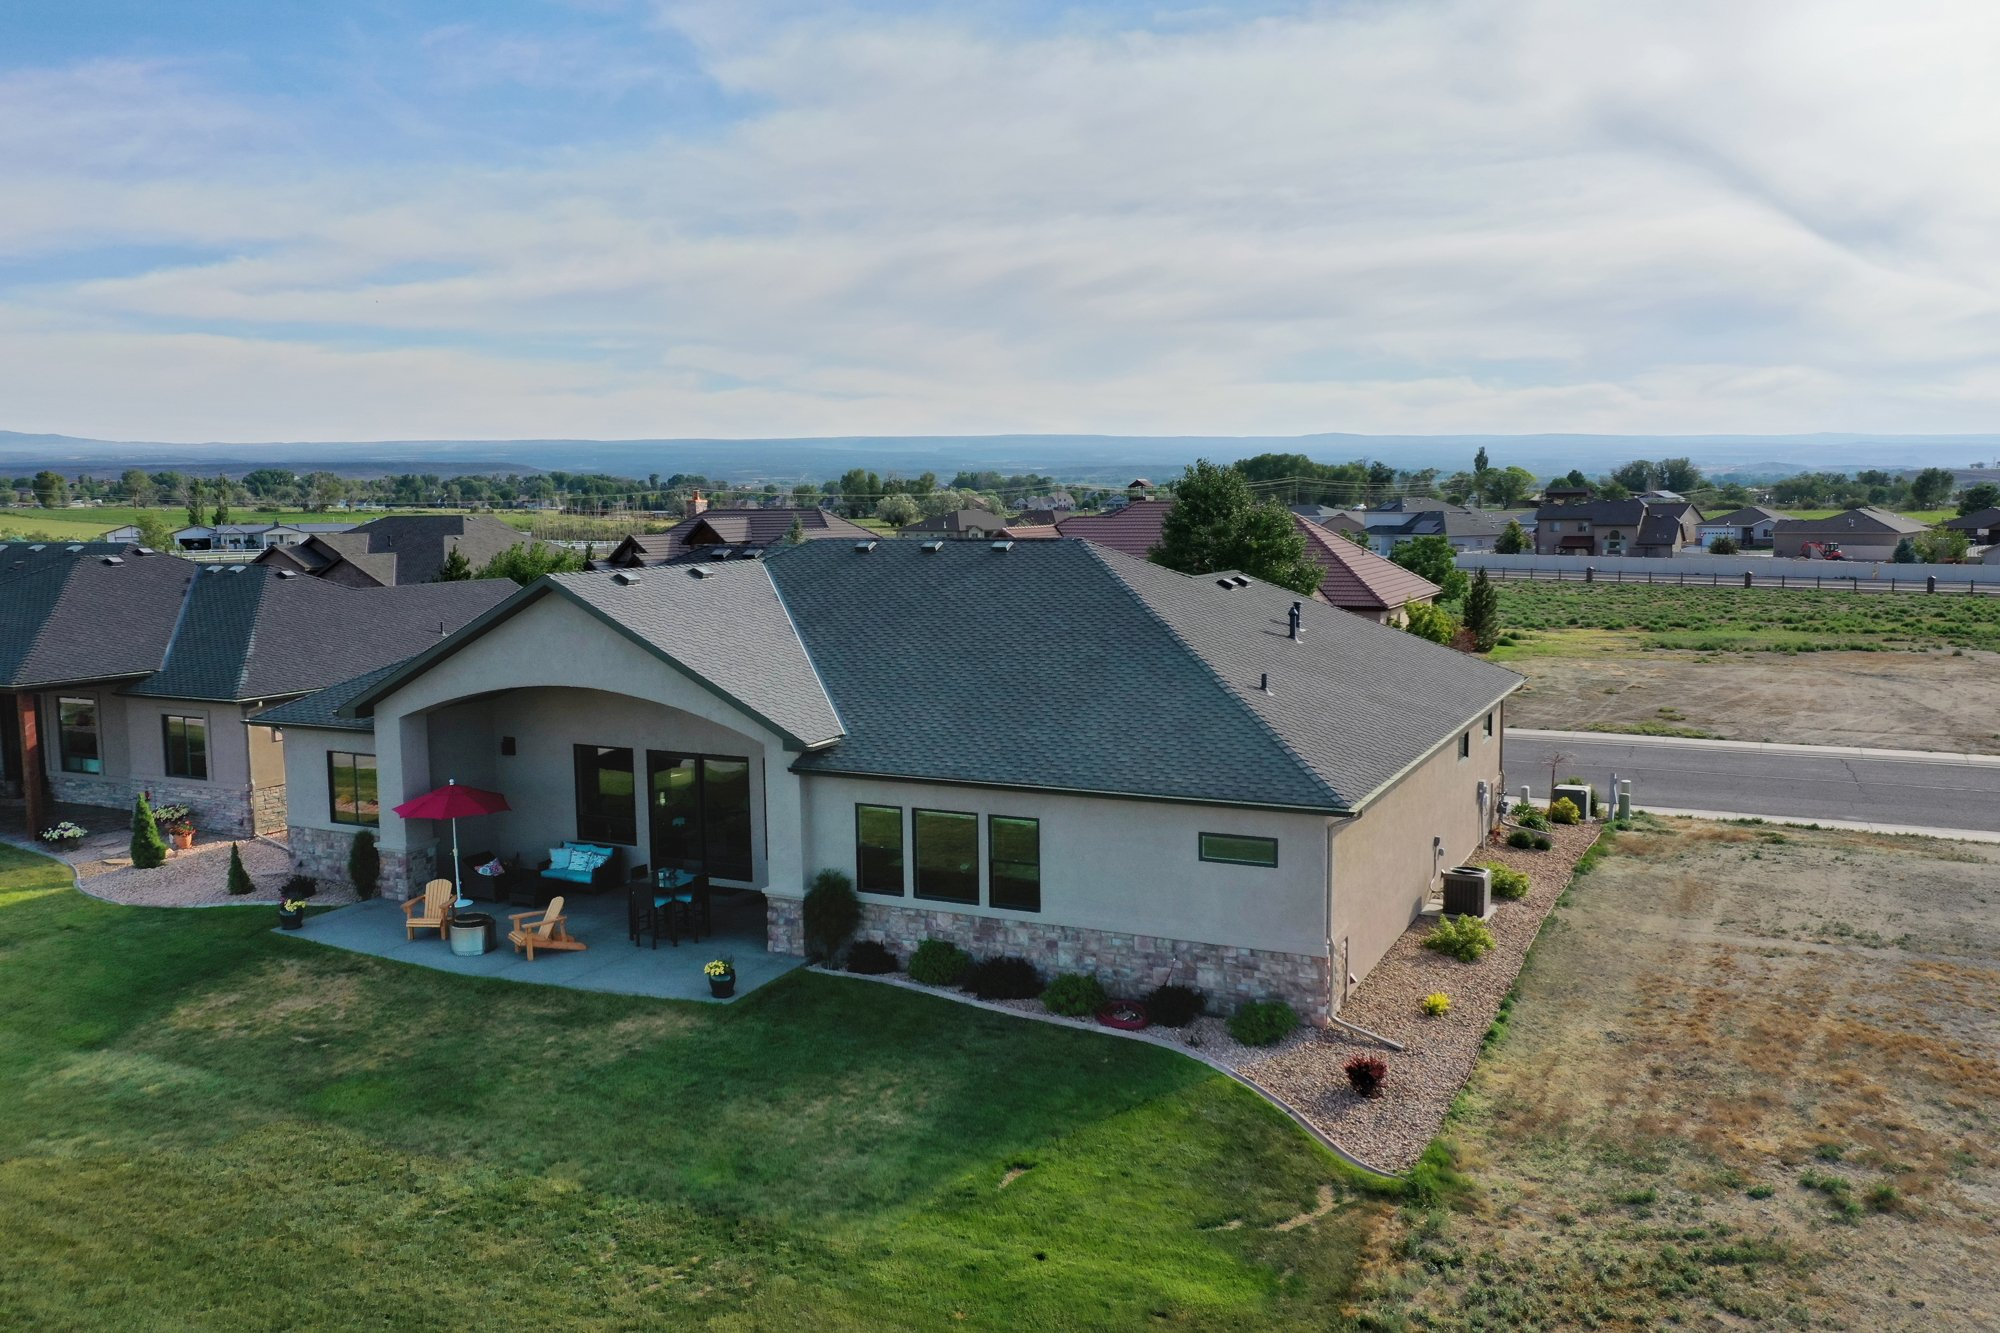 Aerial View Rear of Home and Landscaping - 2927 Sleeping Bear Rd Montrose, CO 81401 - Atha Team Real Estate